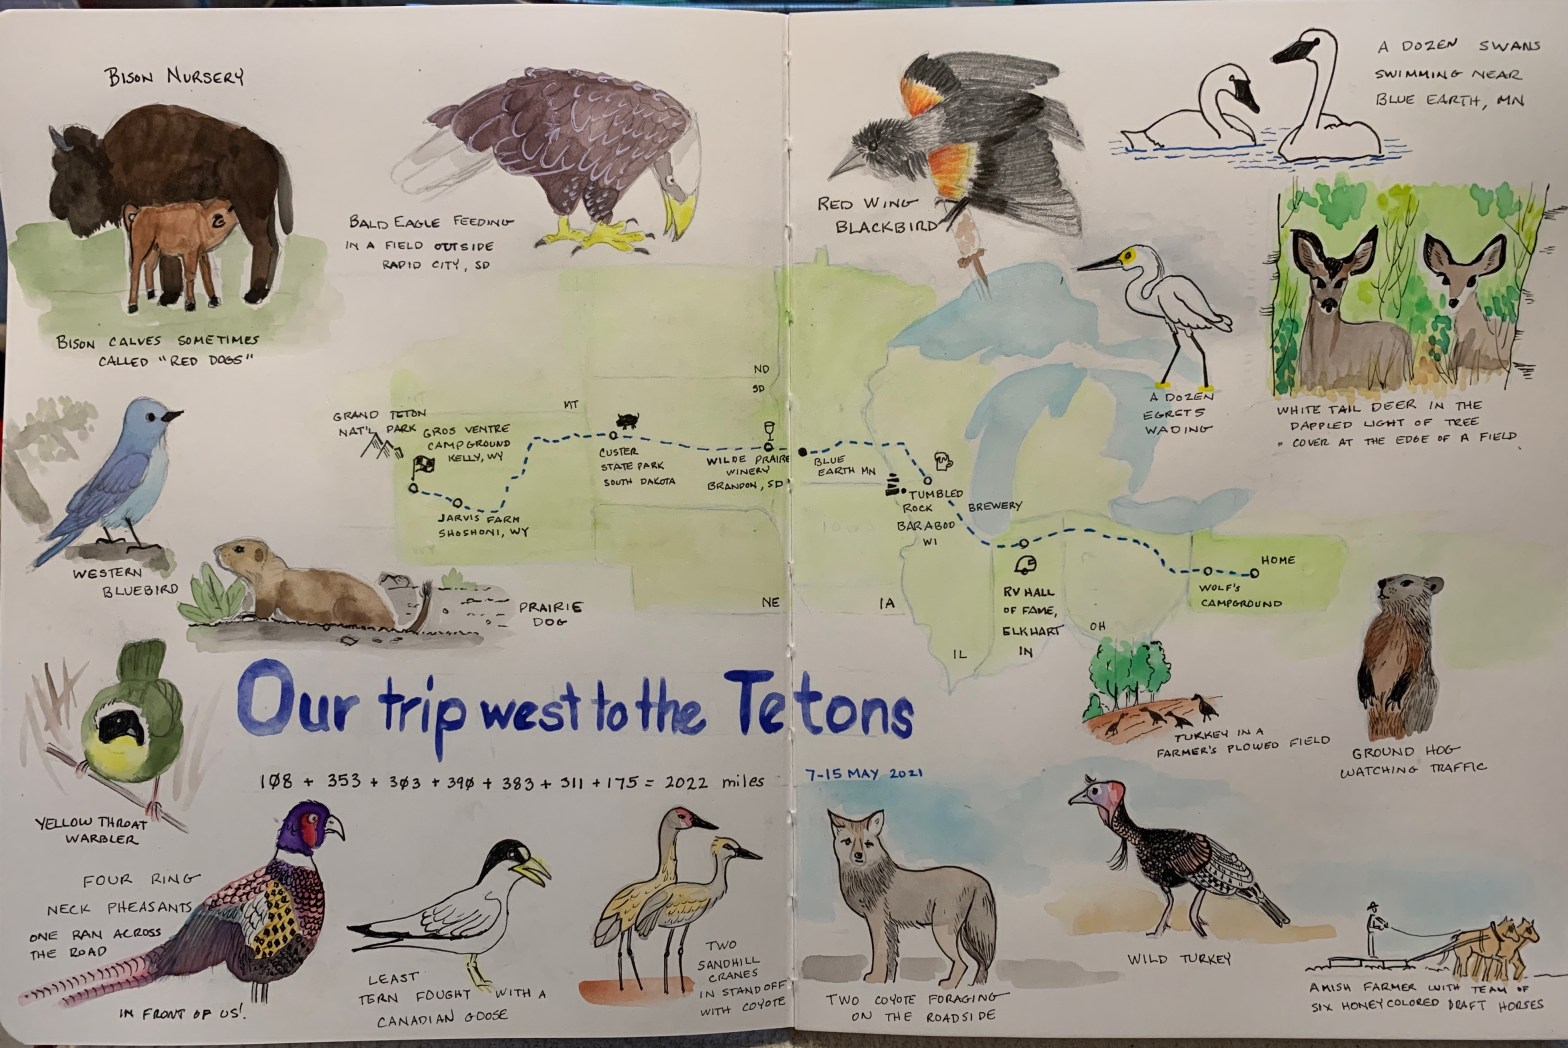 hand drawn map of trip from PA to WY with animal illustrations around border